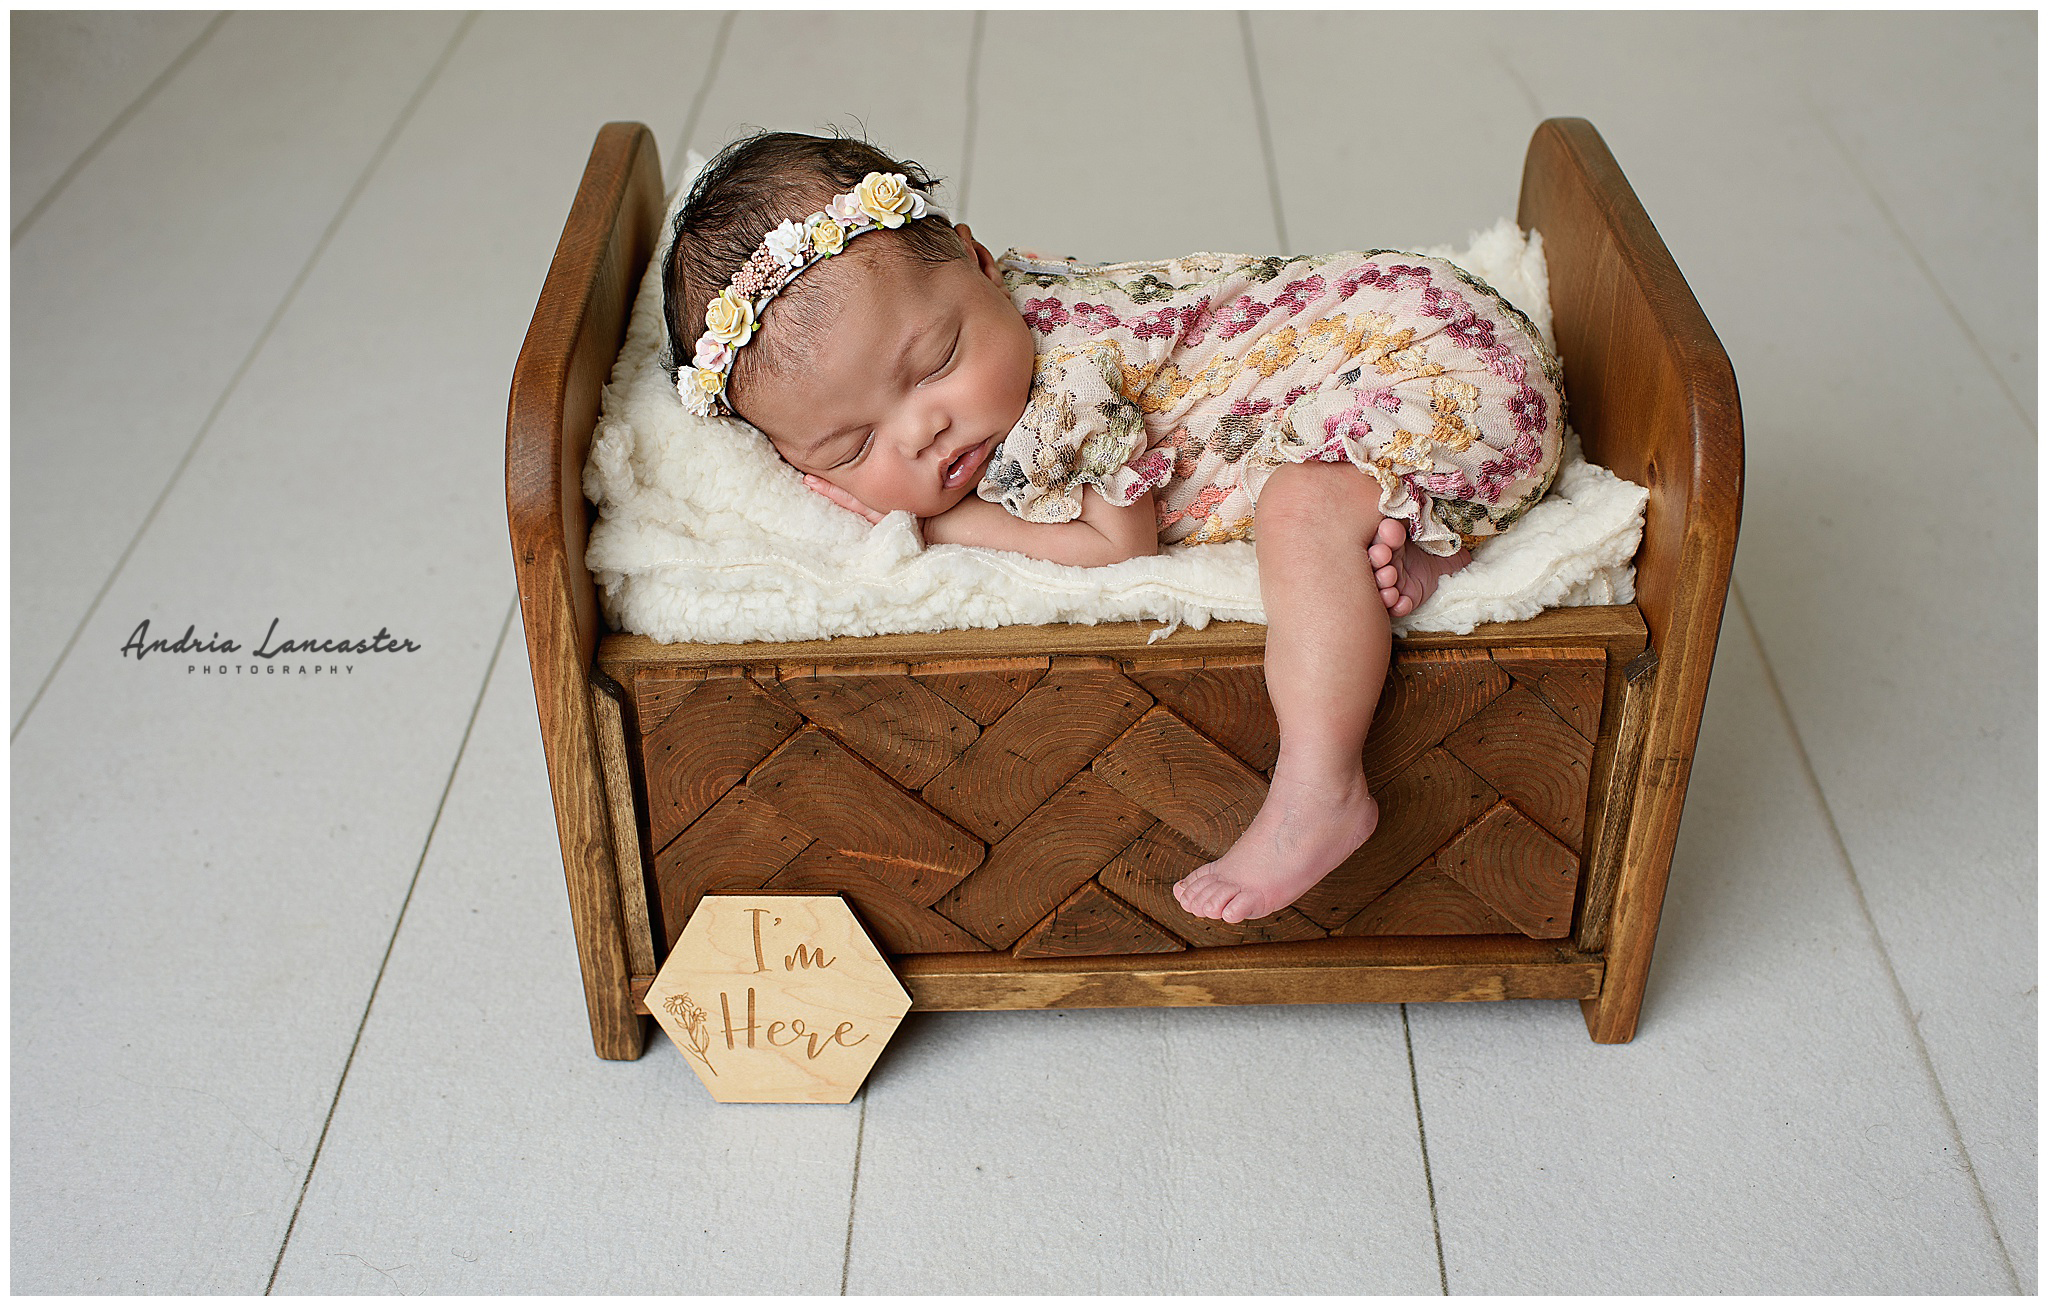 newborn in wooden bed prop with one leg of bed